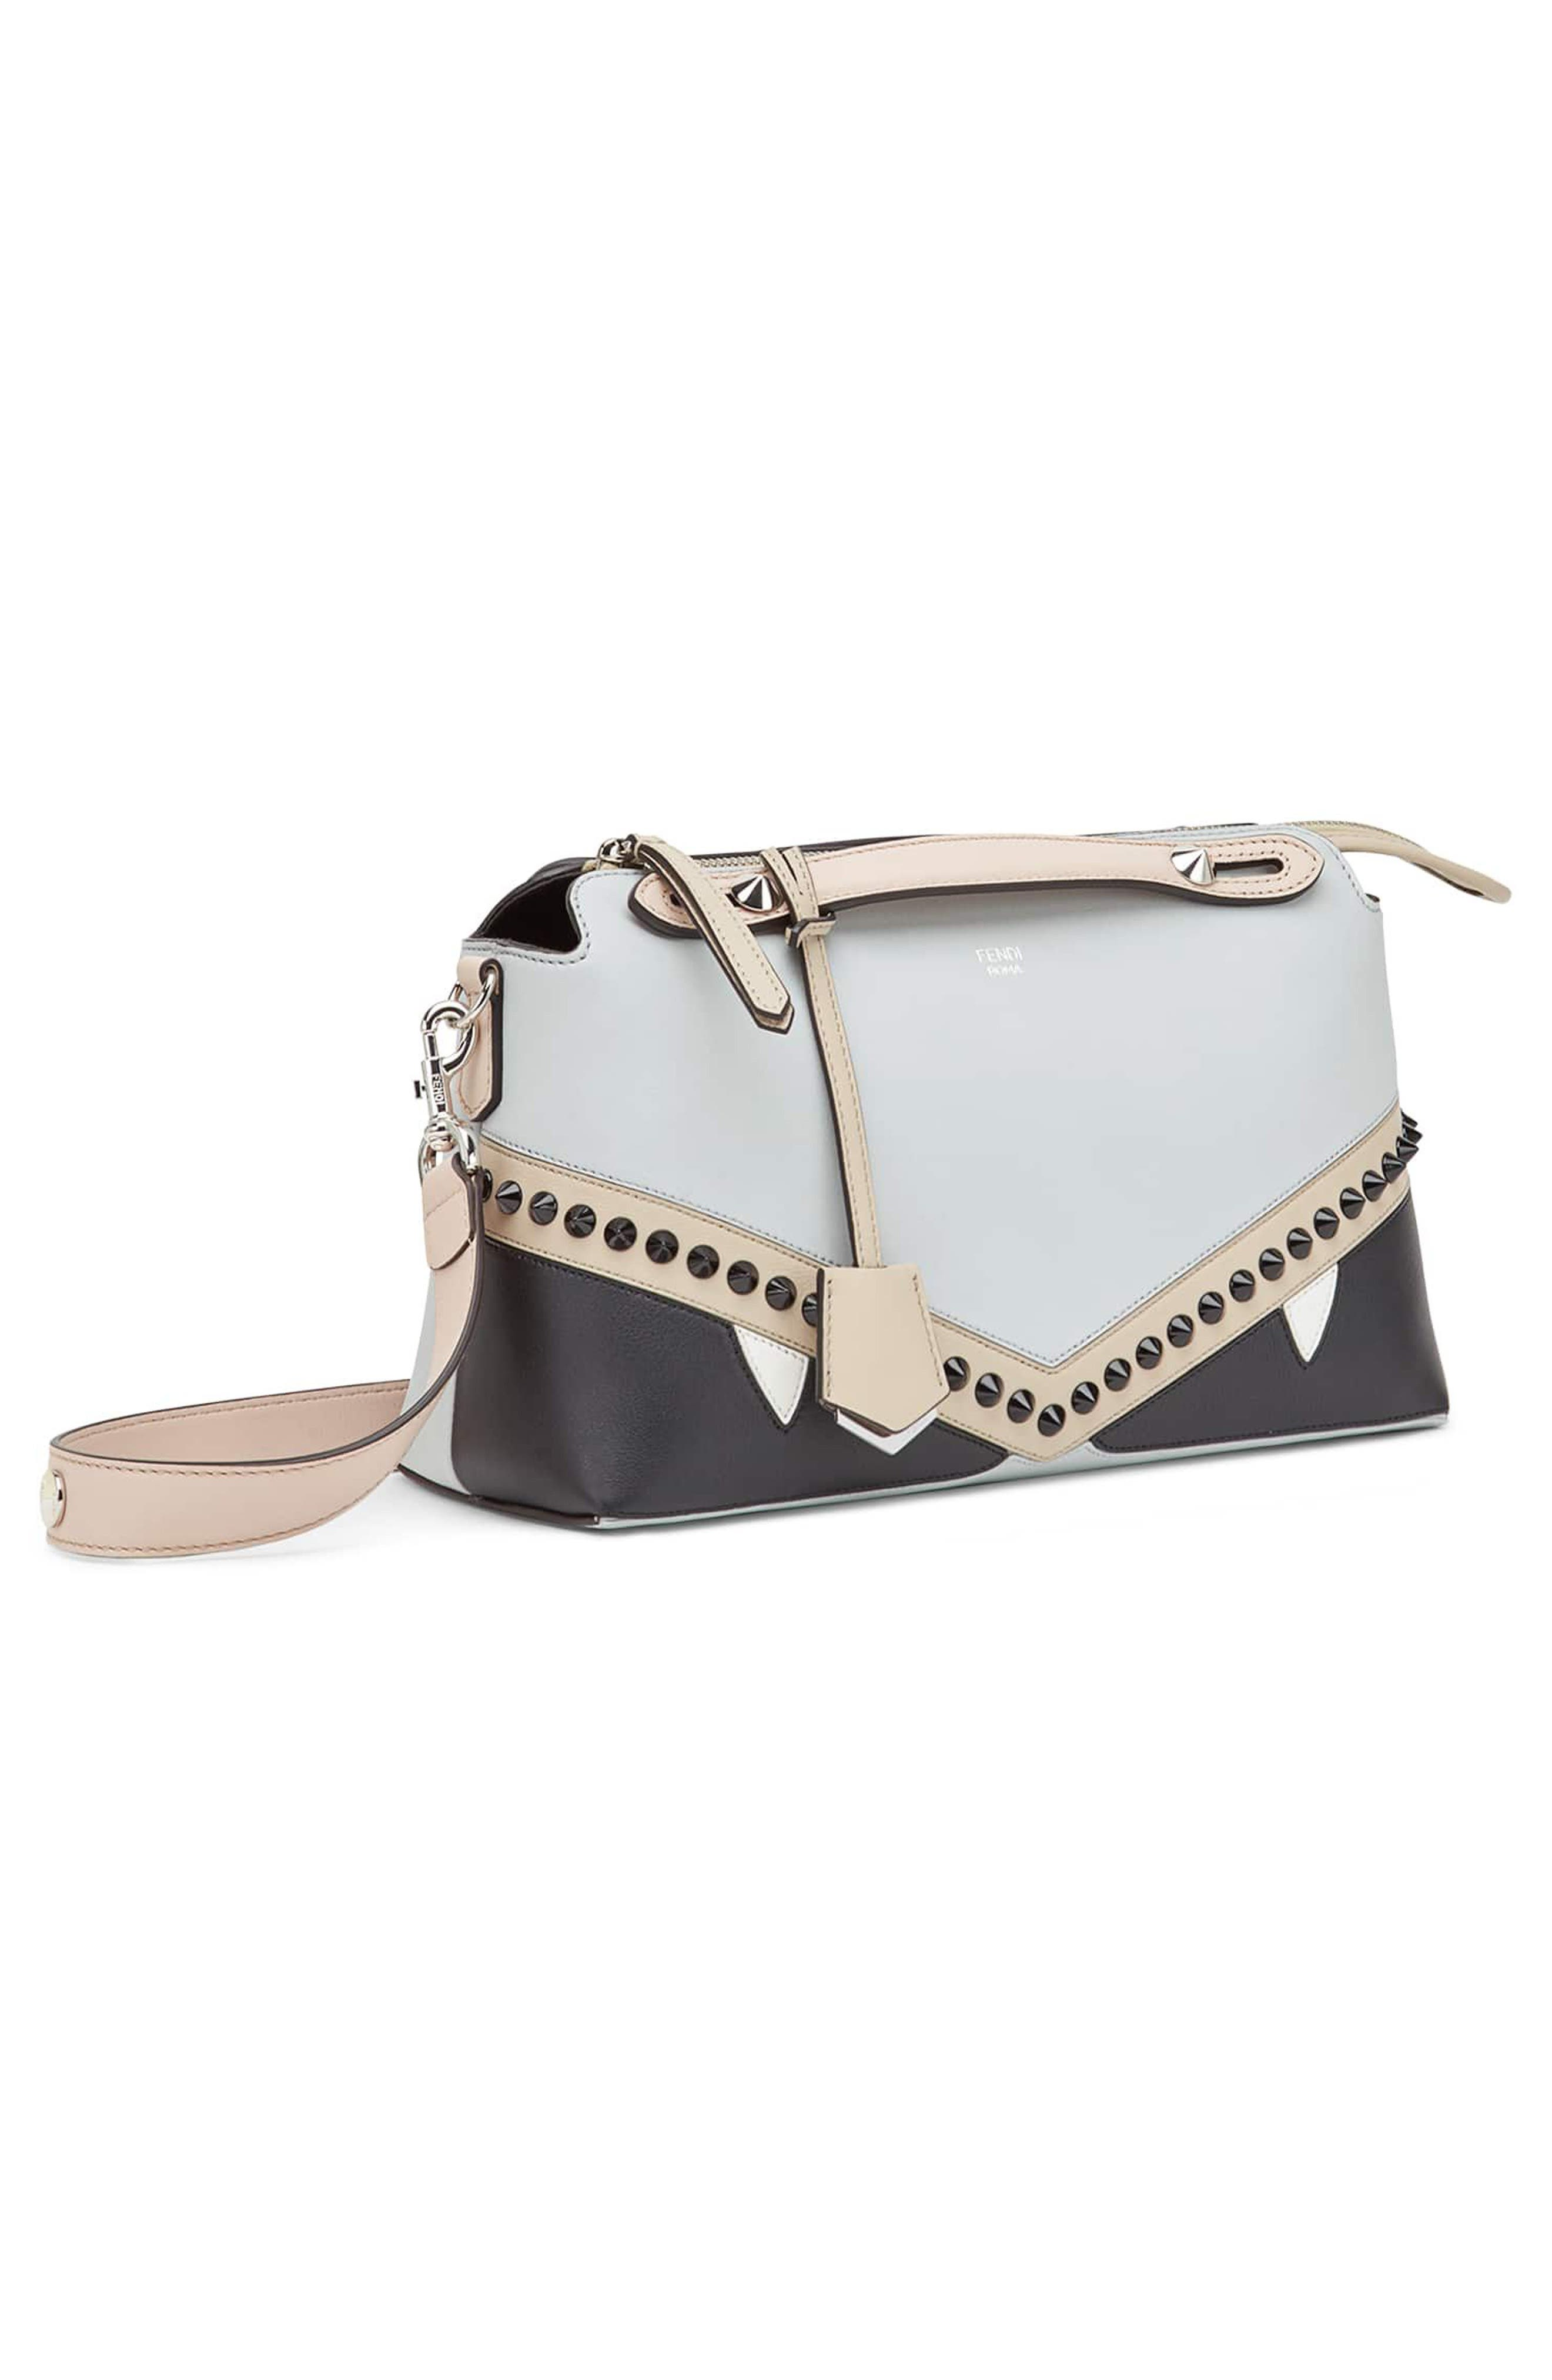 By the Way - Monster Eyes Leather Shoulder Bag,                             Alternate thumbnail 4, color,                             052